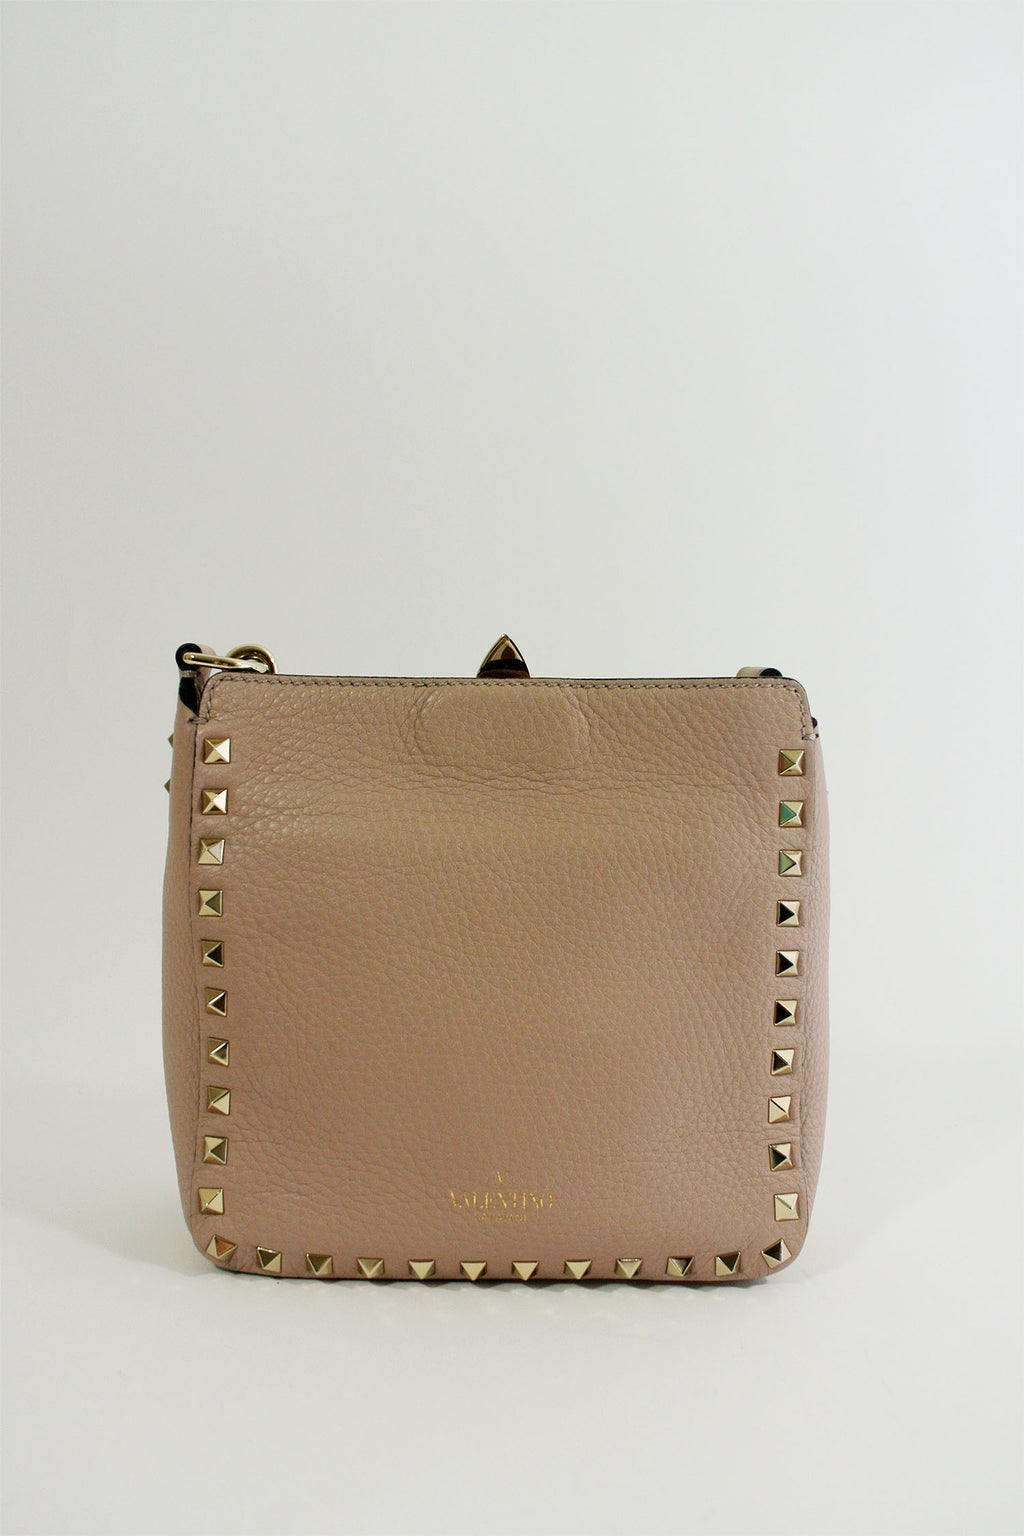 Valentino Mini Rockstud Blush Hobo Crossbody Bag